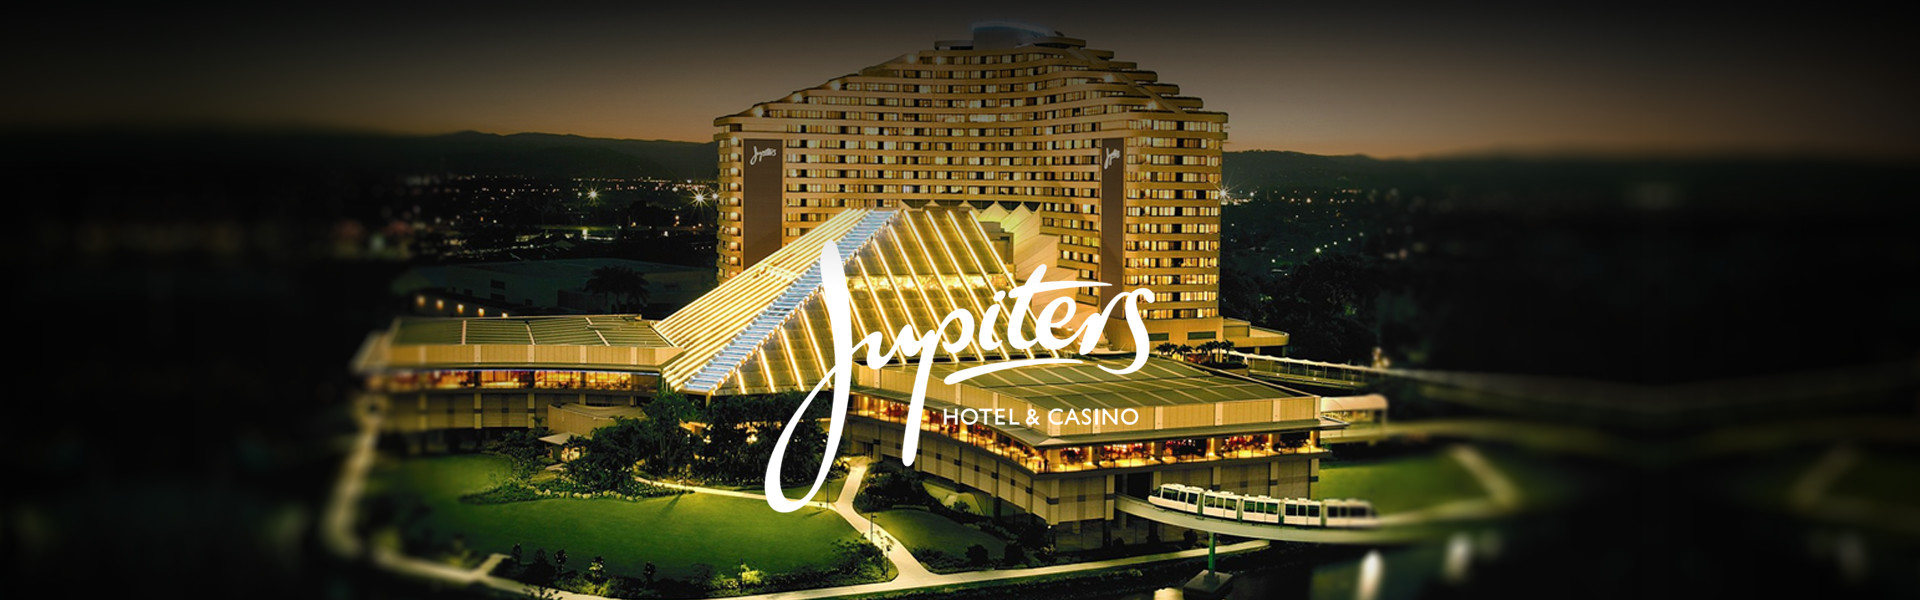 Jupiters casino gold coast chinese restaurant